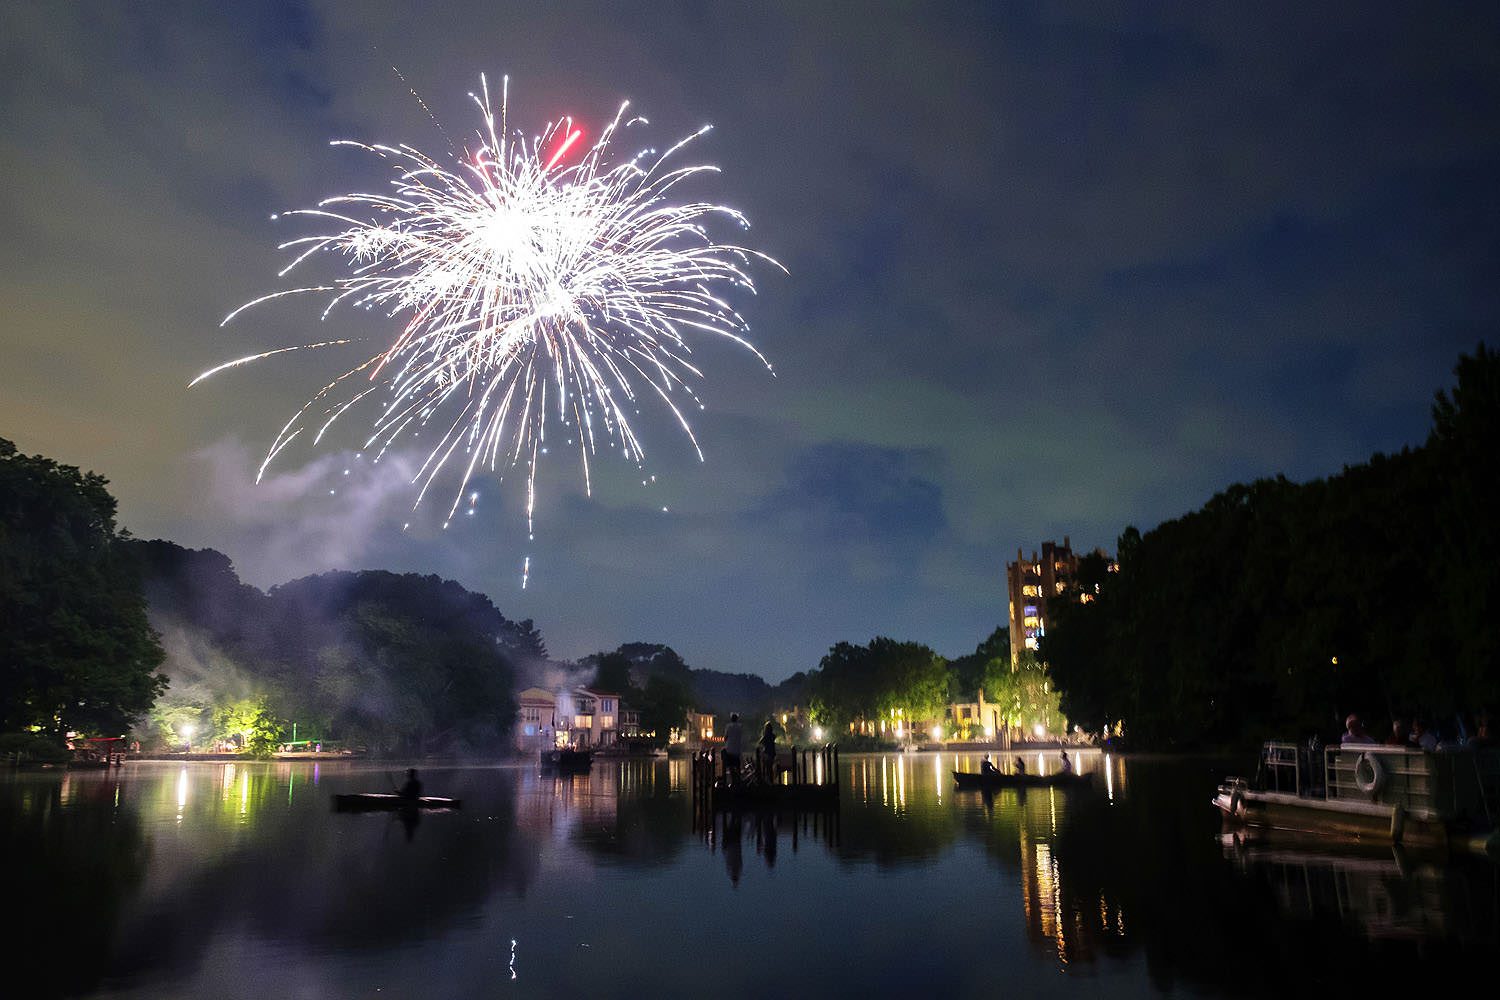 Fourth of July fireworks over Lake Anne Plaza in Reston, Virginia